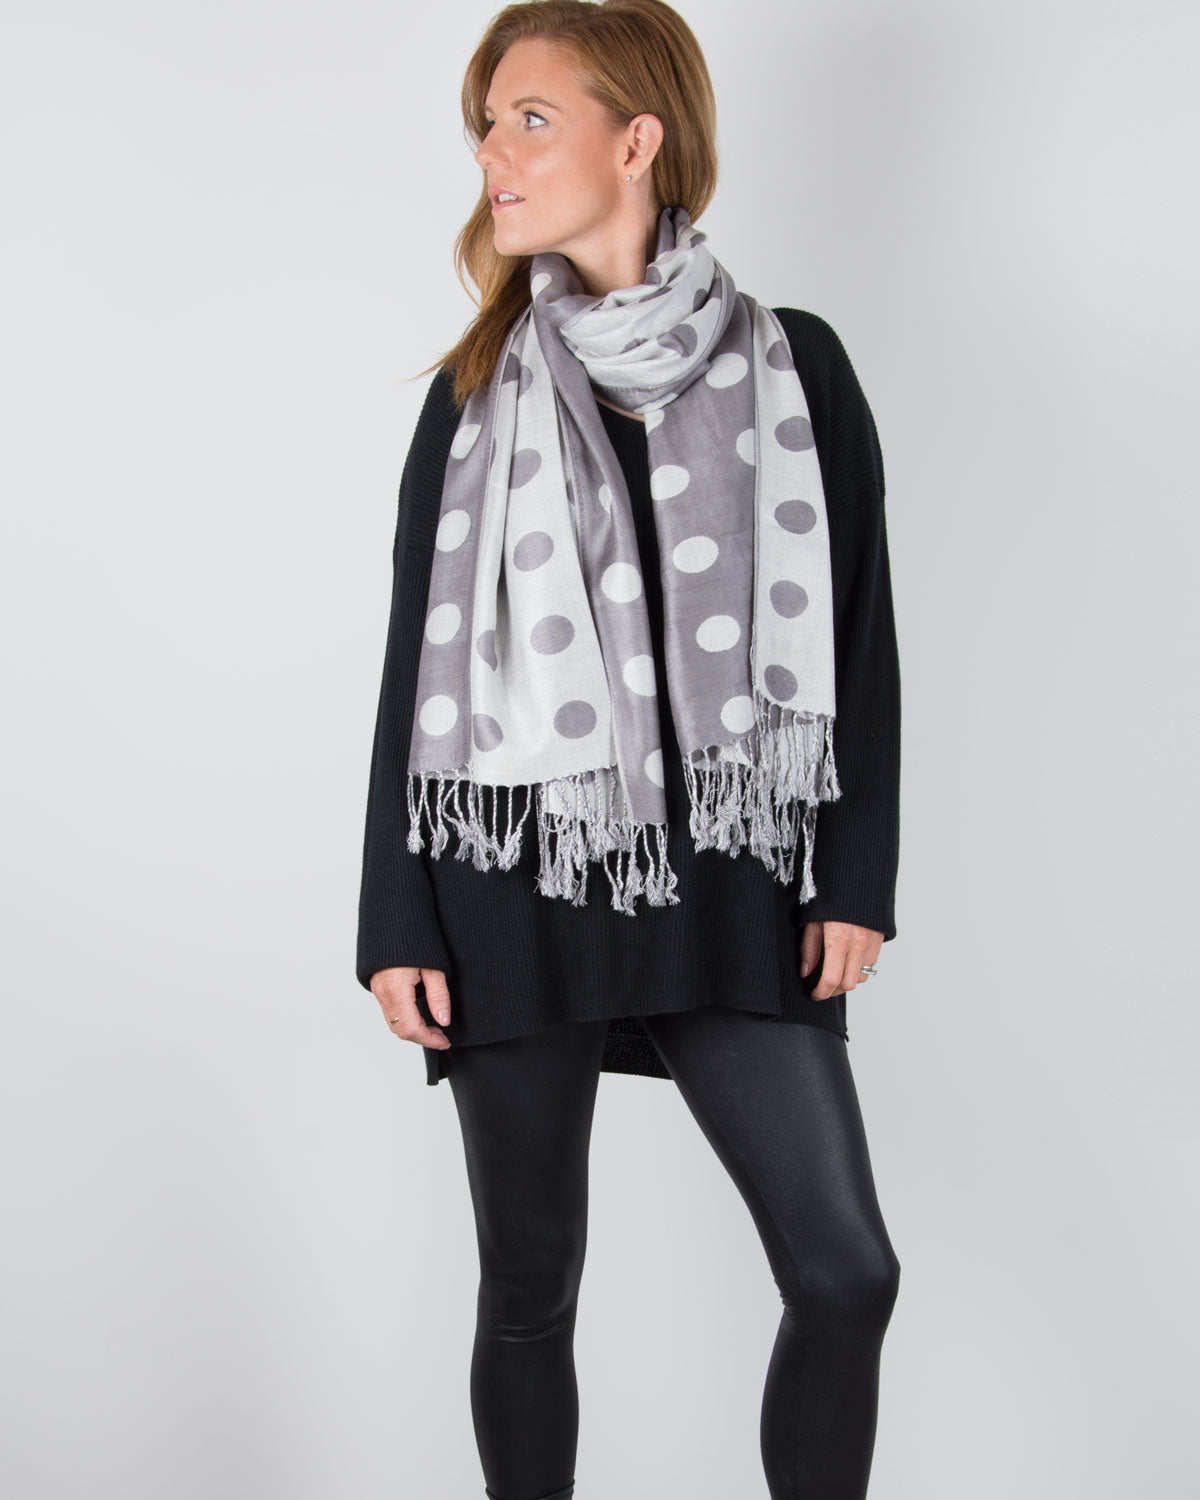 an image showing a grey and silver spot pashmina